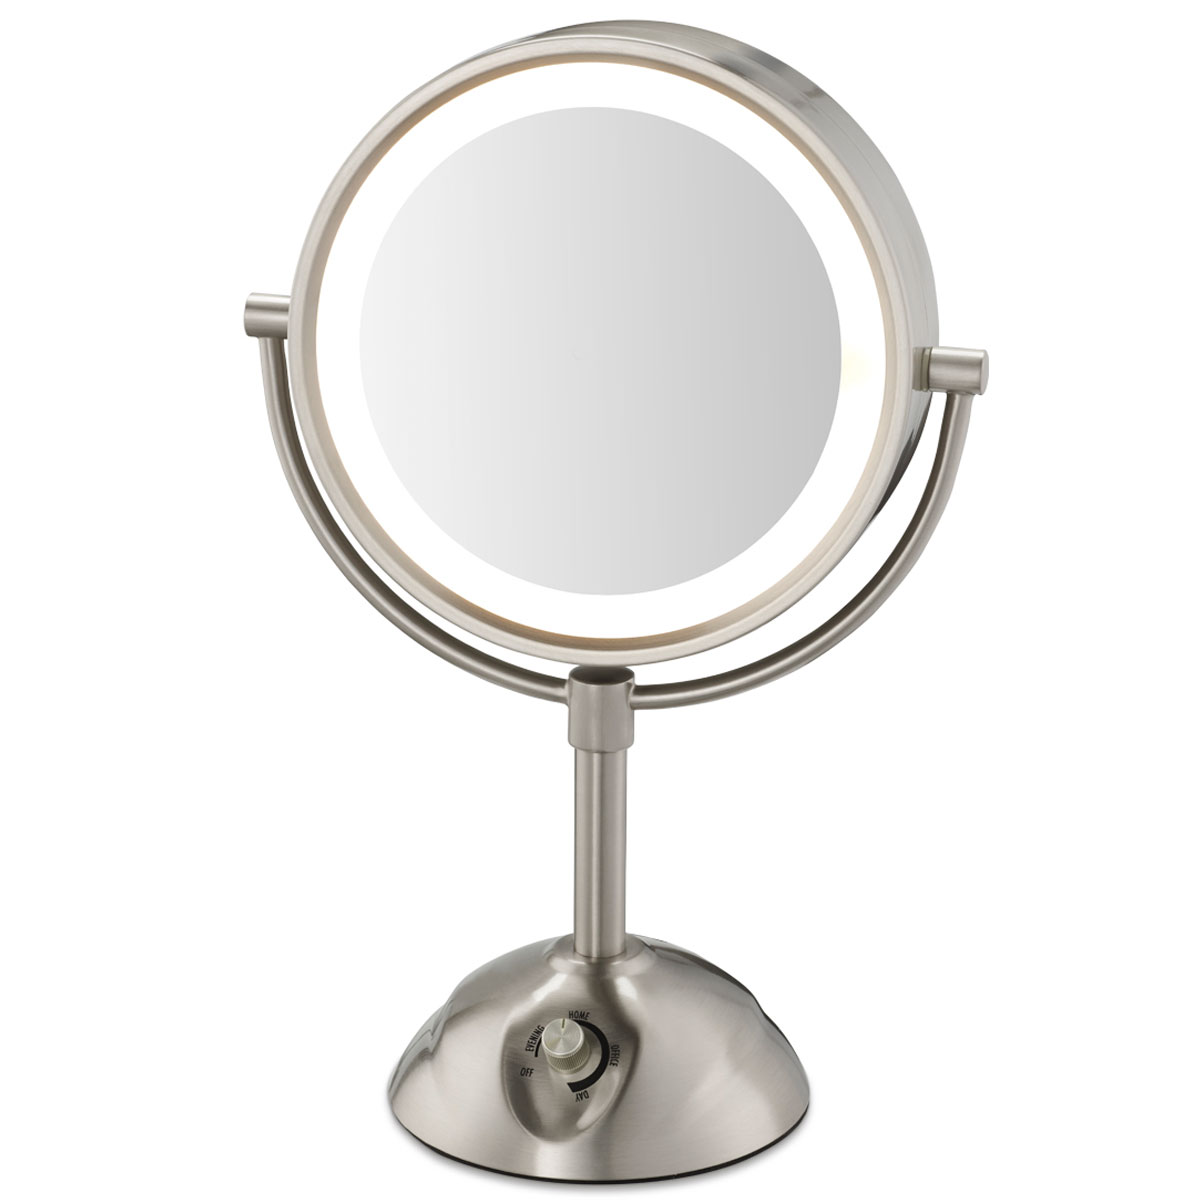 Conair be103wh 85 lighted vanity mirror 1x 5x magnification conair be103wh 85 lighted vanity mirror 1x 5x magnification satin nickel 4 per case price per each mozeypictures Gallery